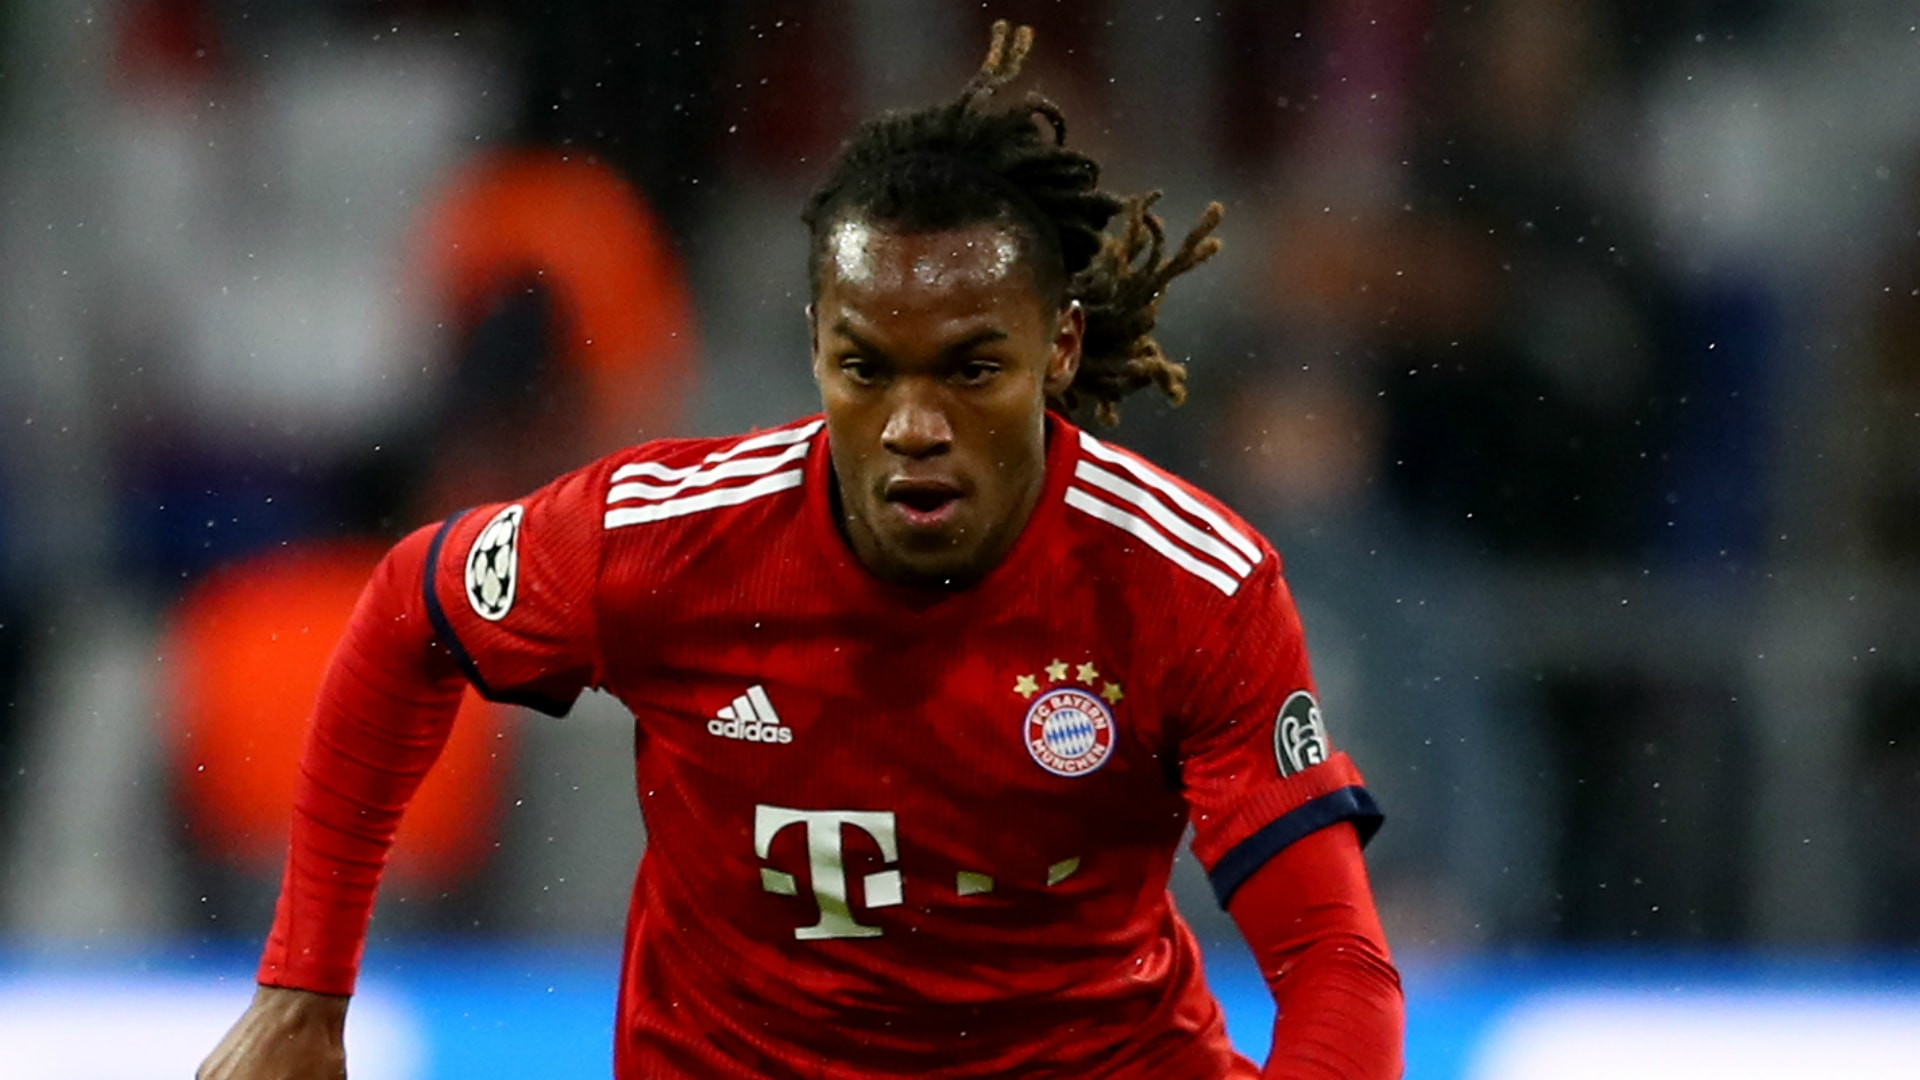 Werder Bremen vs Bayern Munich Betting Predictions